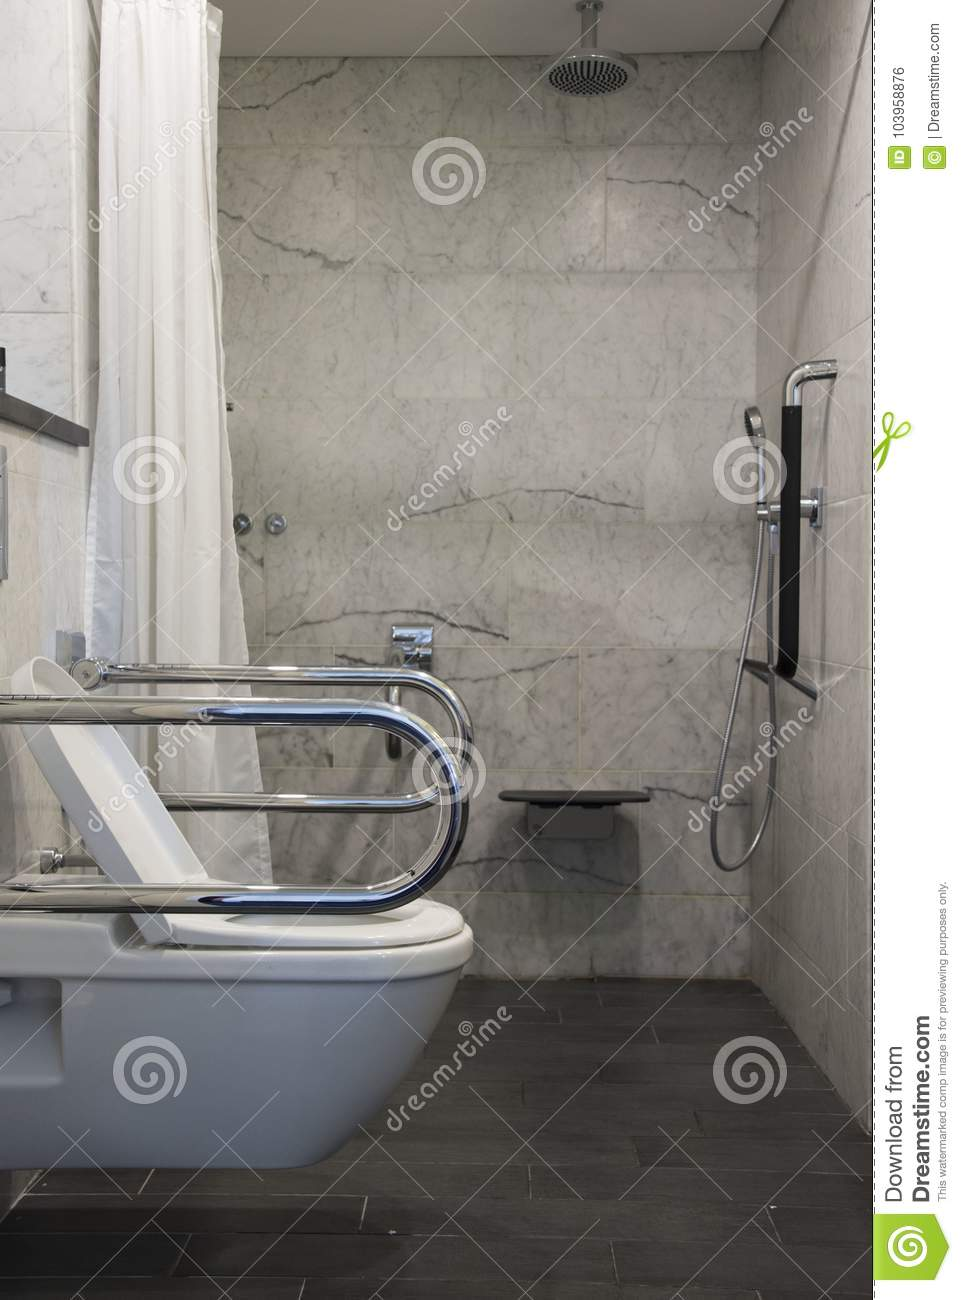 Wheelchair Accessible Bathroom And Toilet Stock Photo - Image of ...